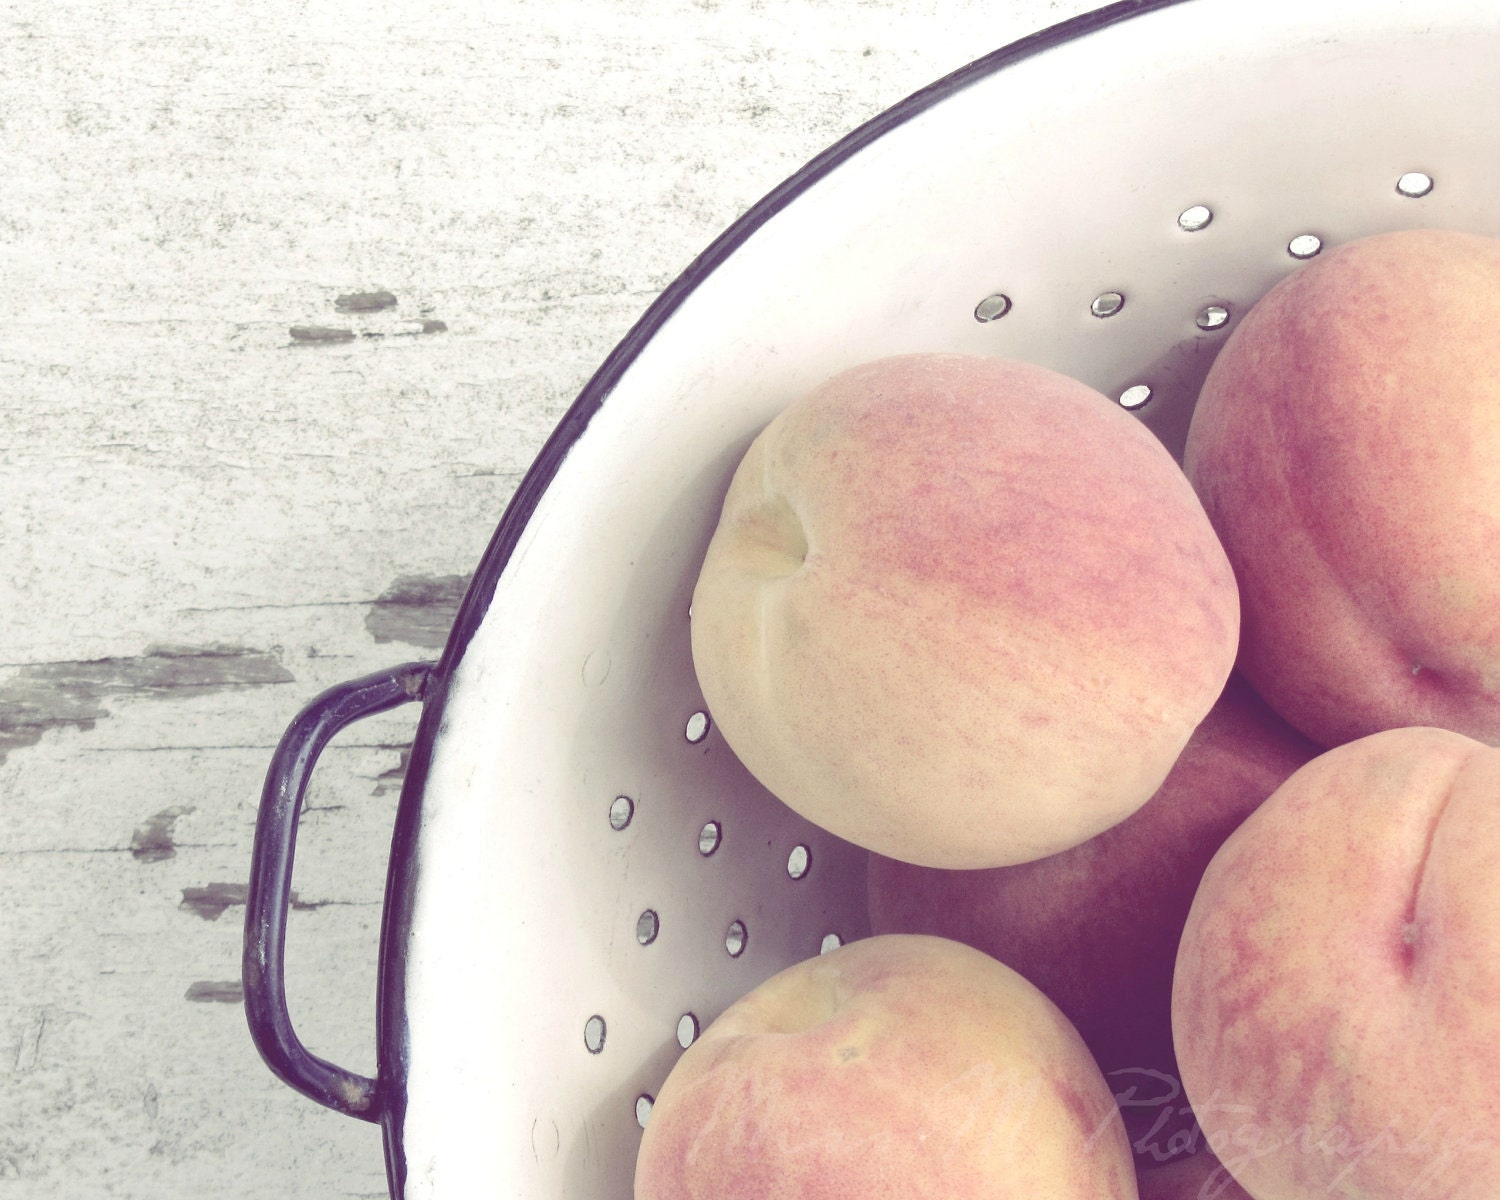 Country living, peaches, colander, peach, gray, rustic, farmhouse, home decor, original fine art photograph, 8x10 print - MissMPhotography